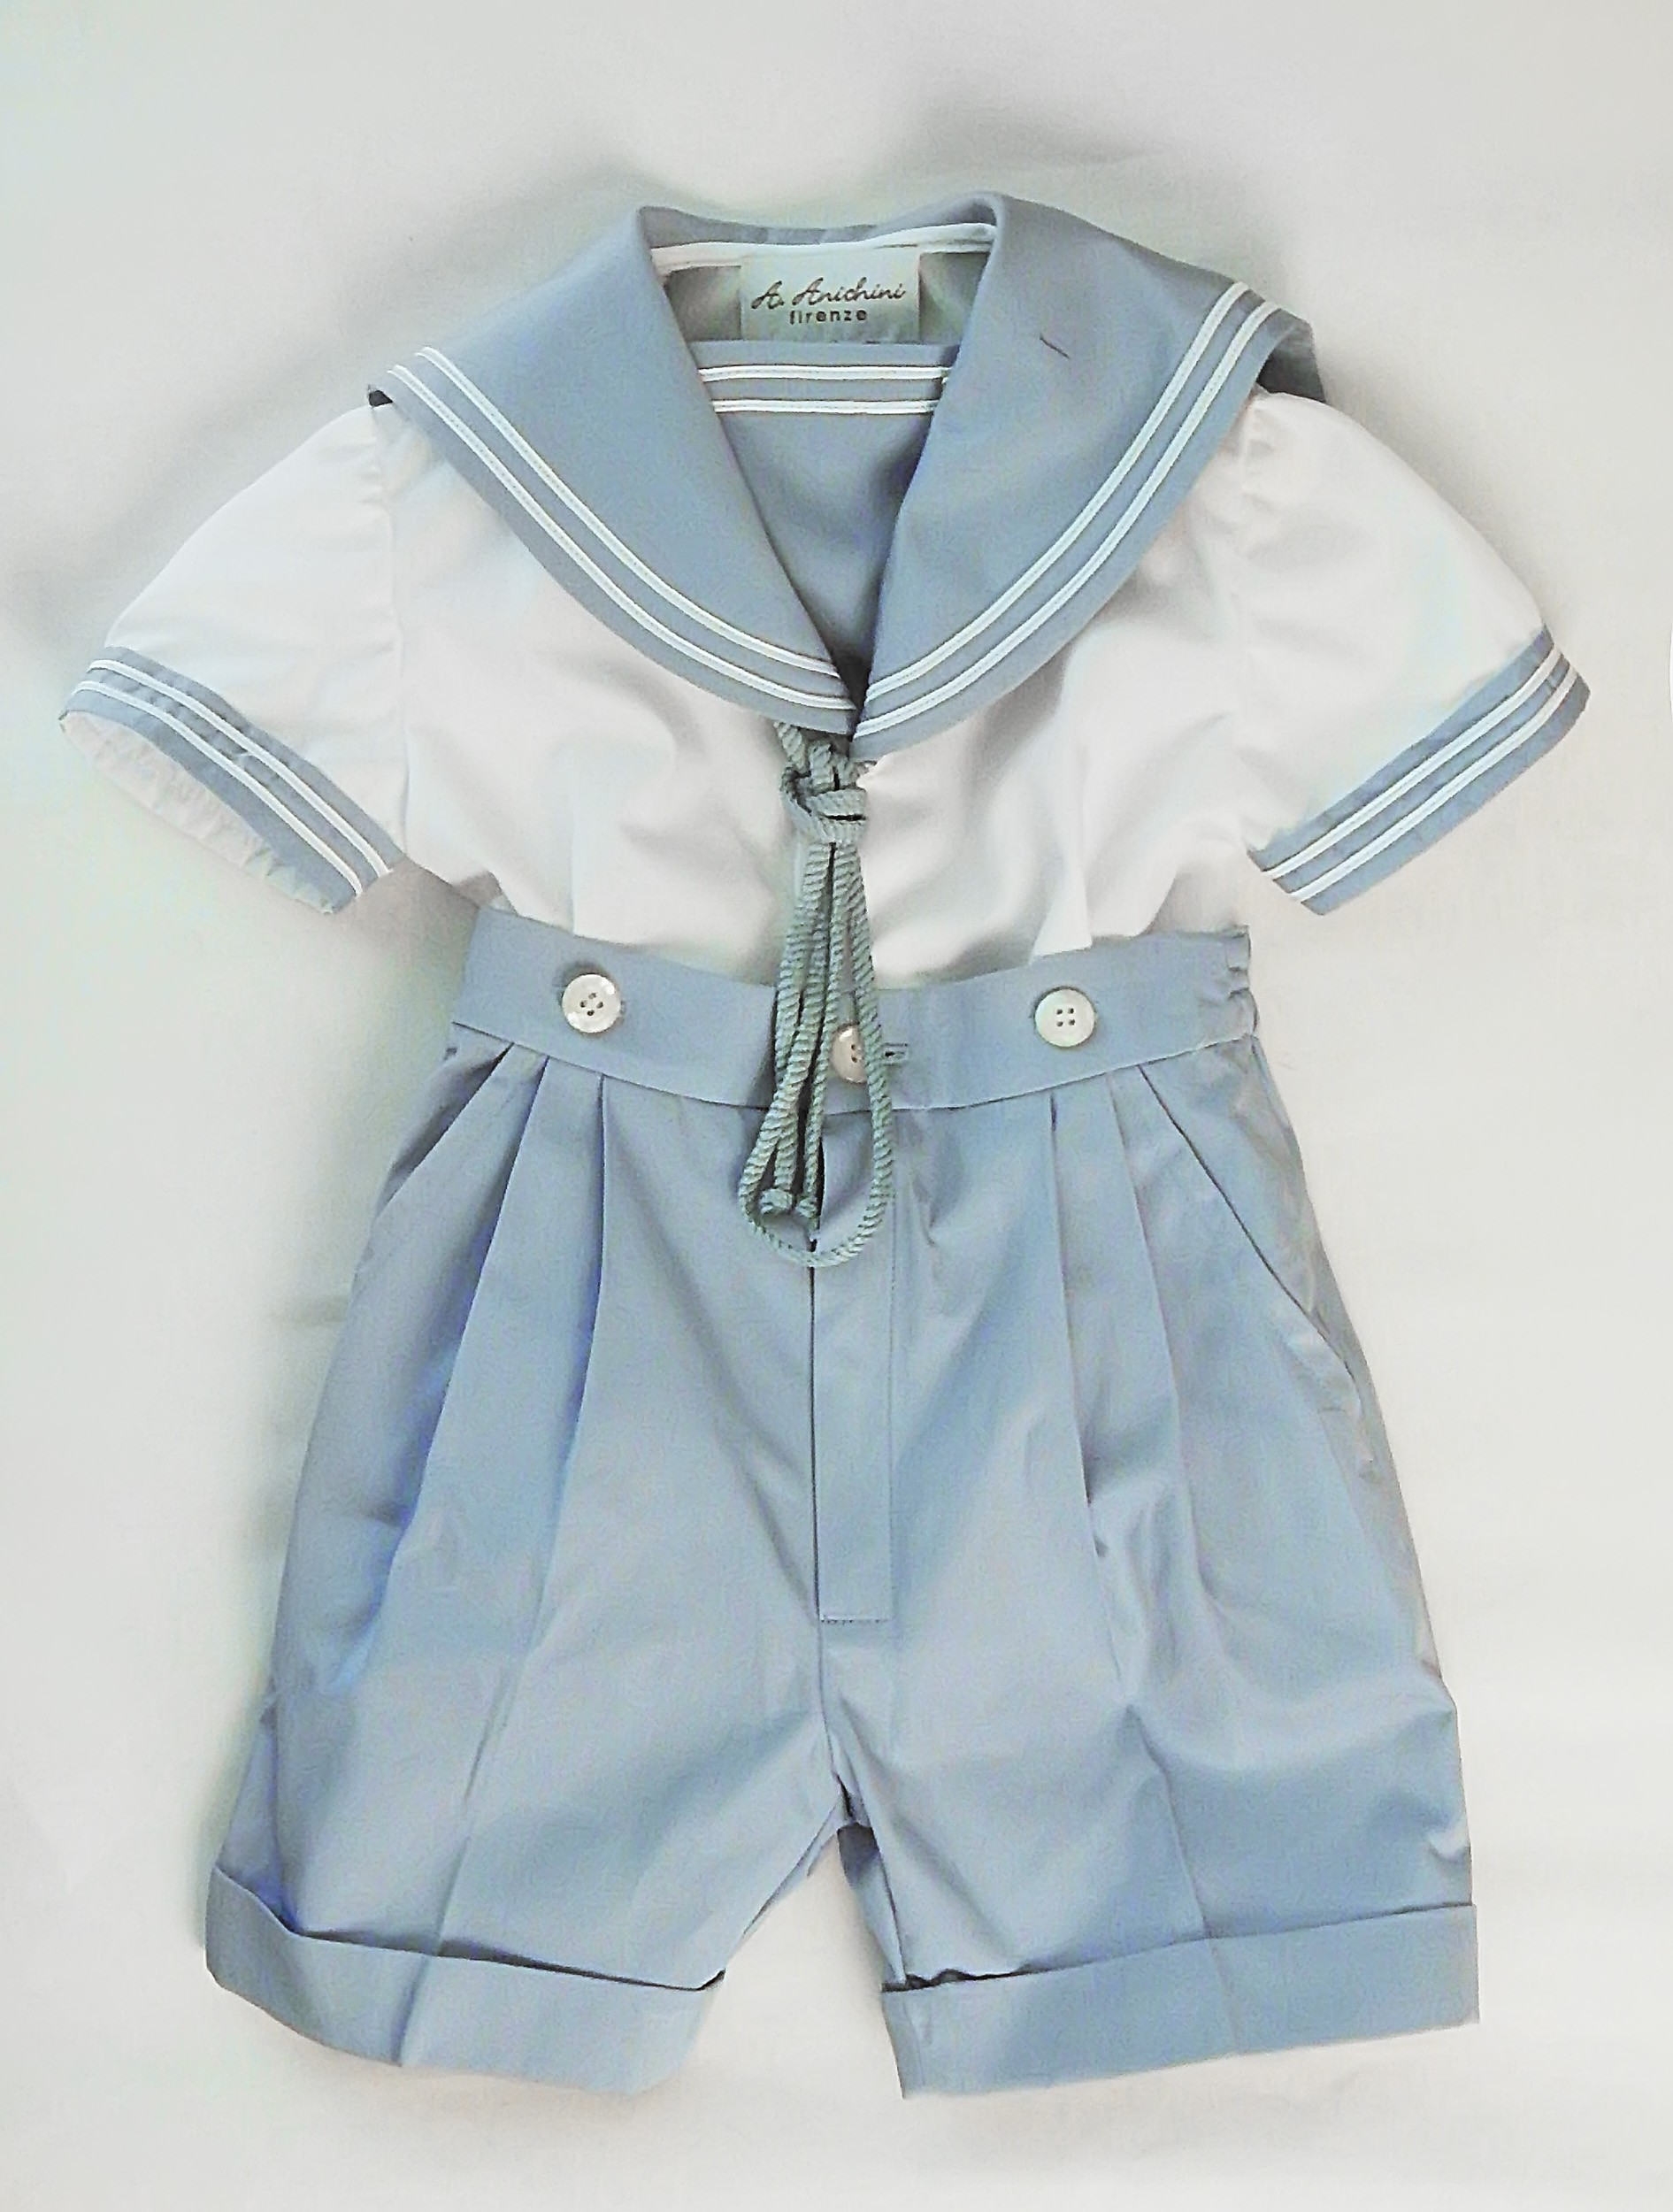 Boy Sailor Outfit Giacomo Perfect Style Suit